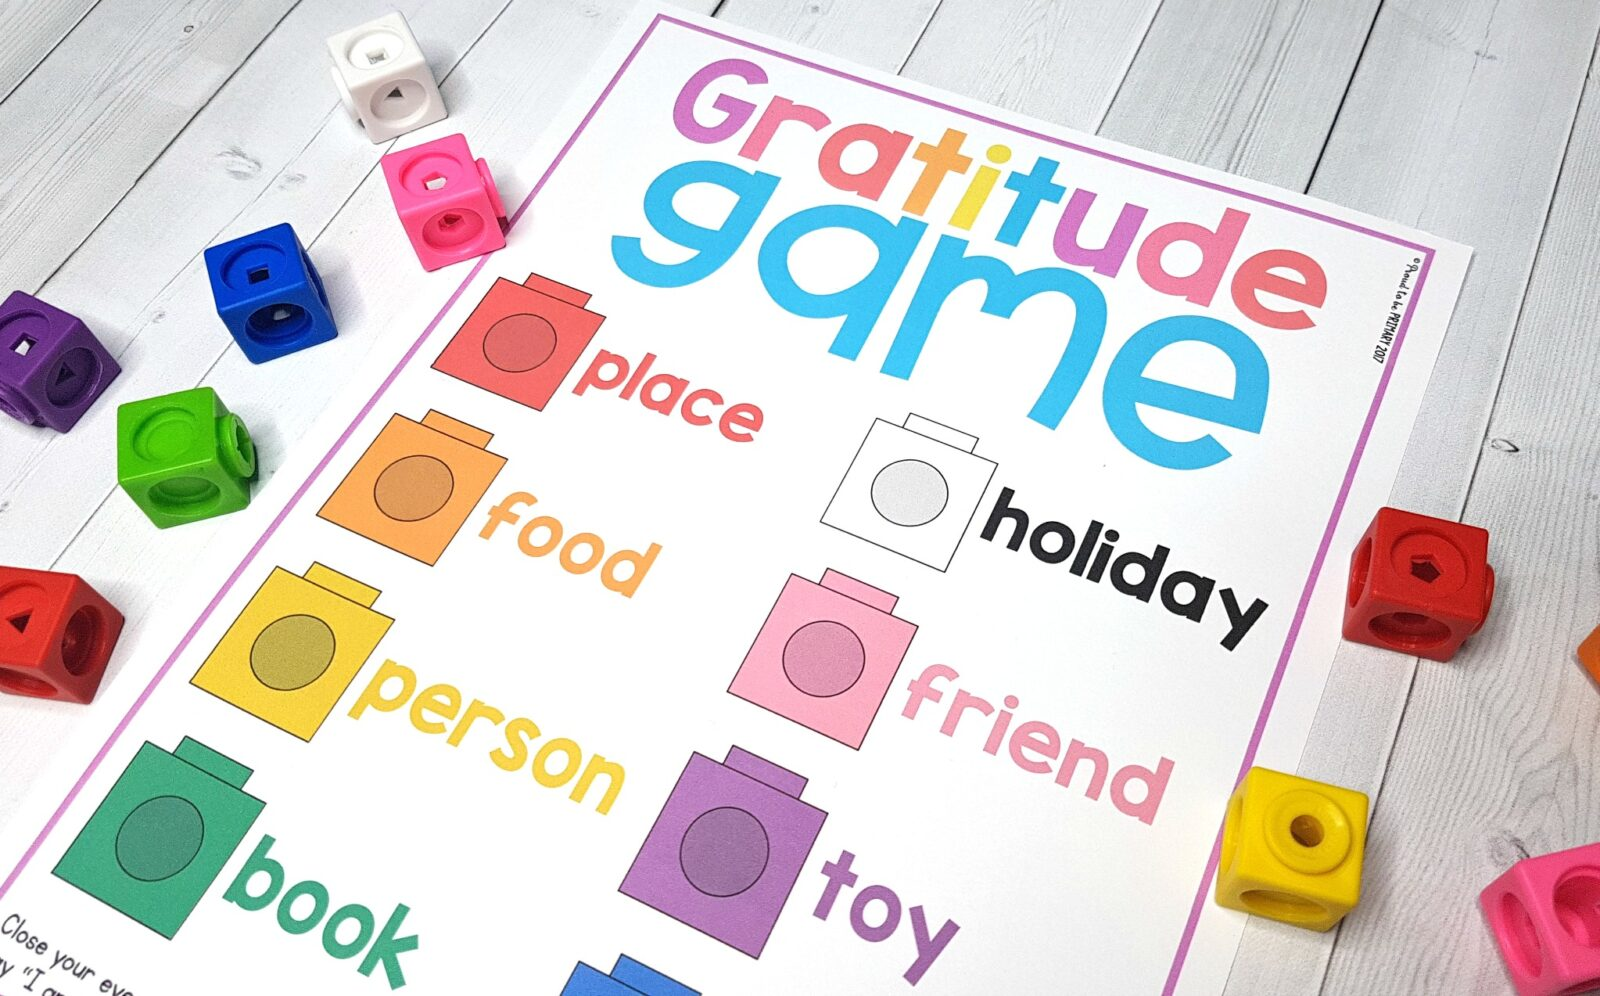 gratitude game printable with colored snap cubes on table